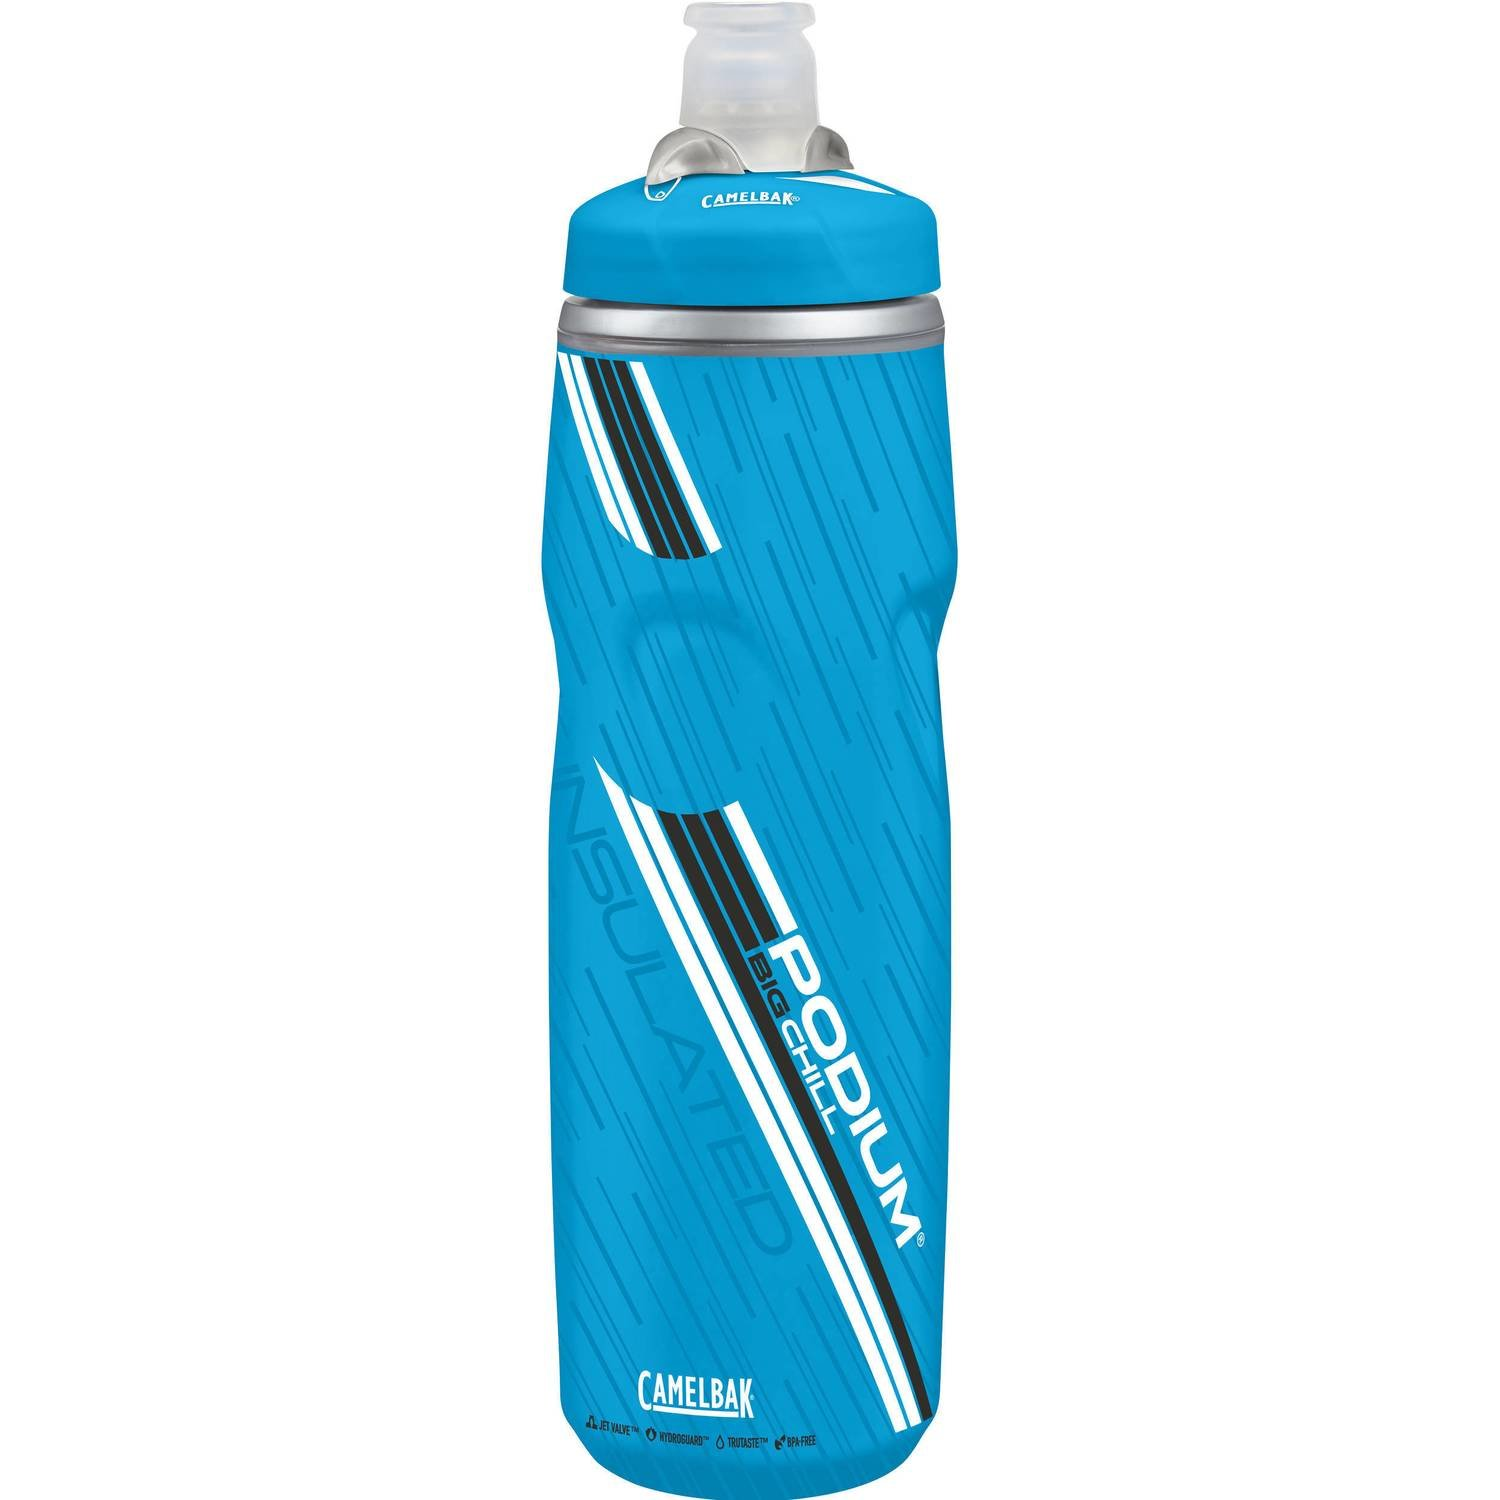 Camelbak Bottle Podium Big Chill 750 ml